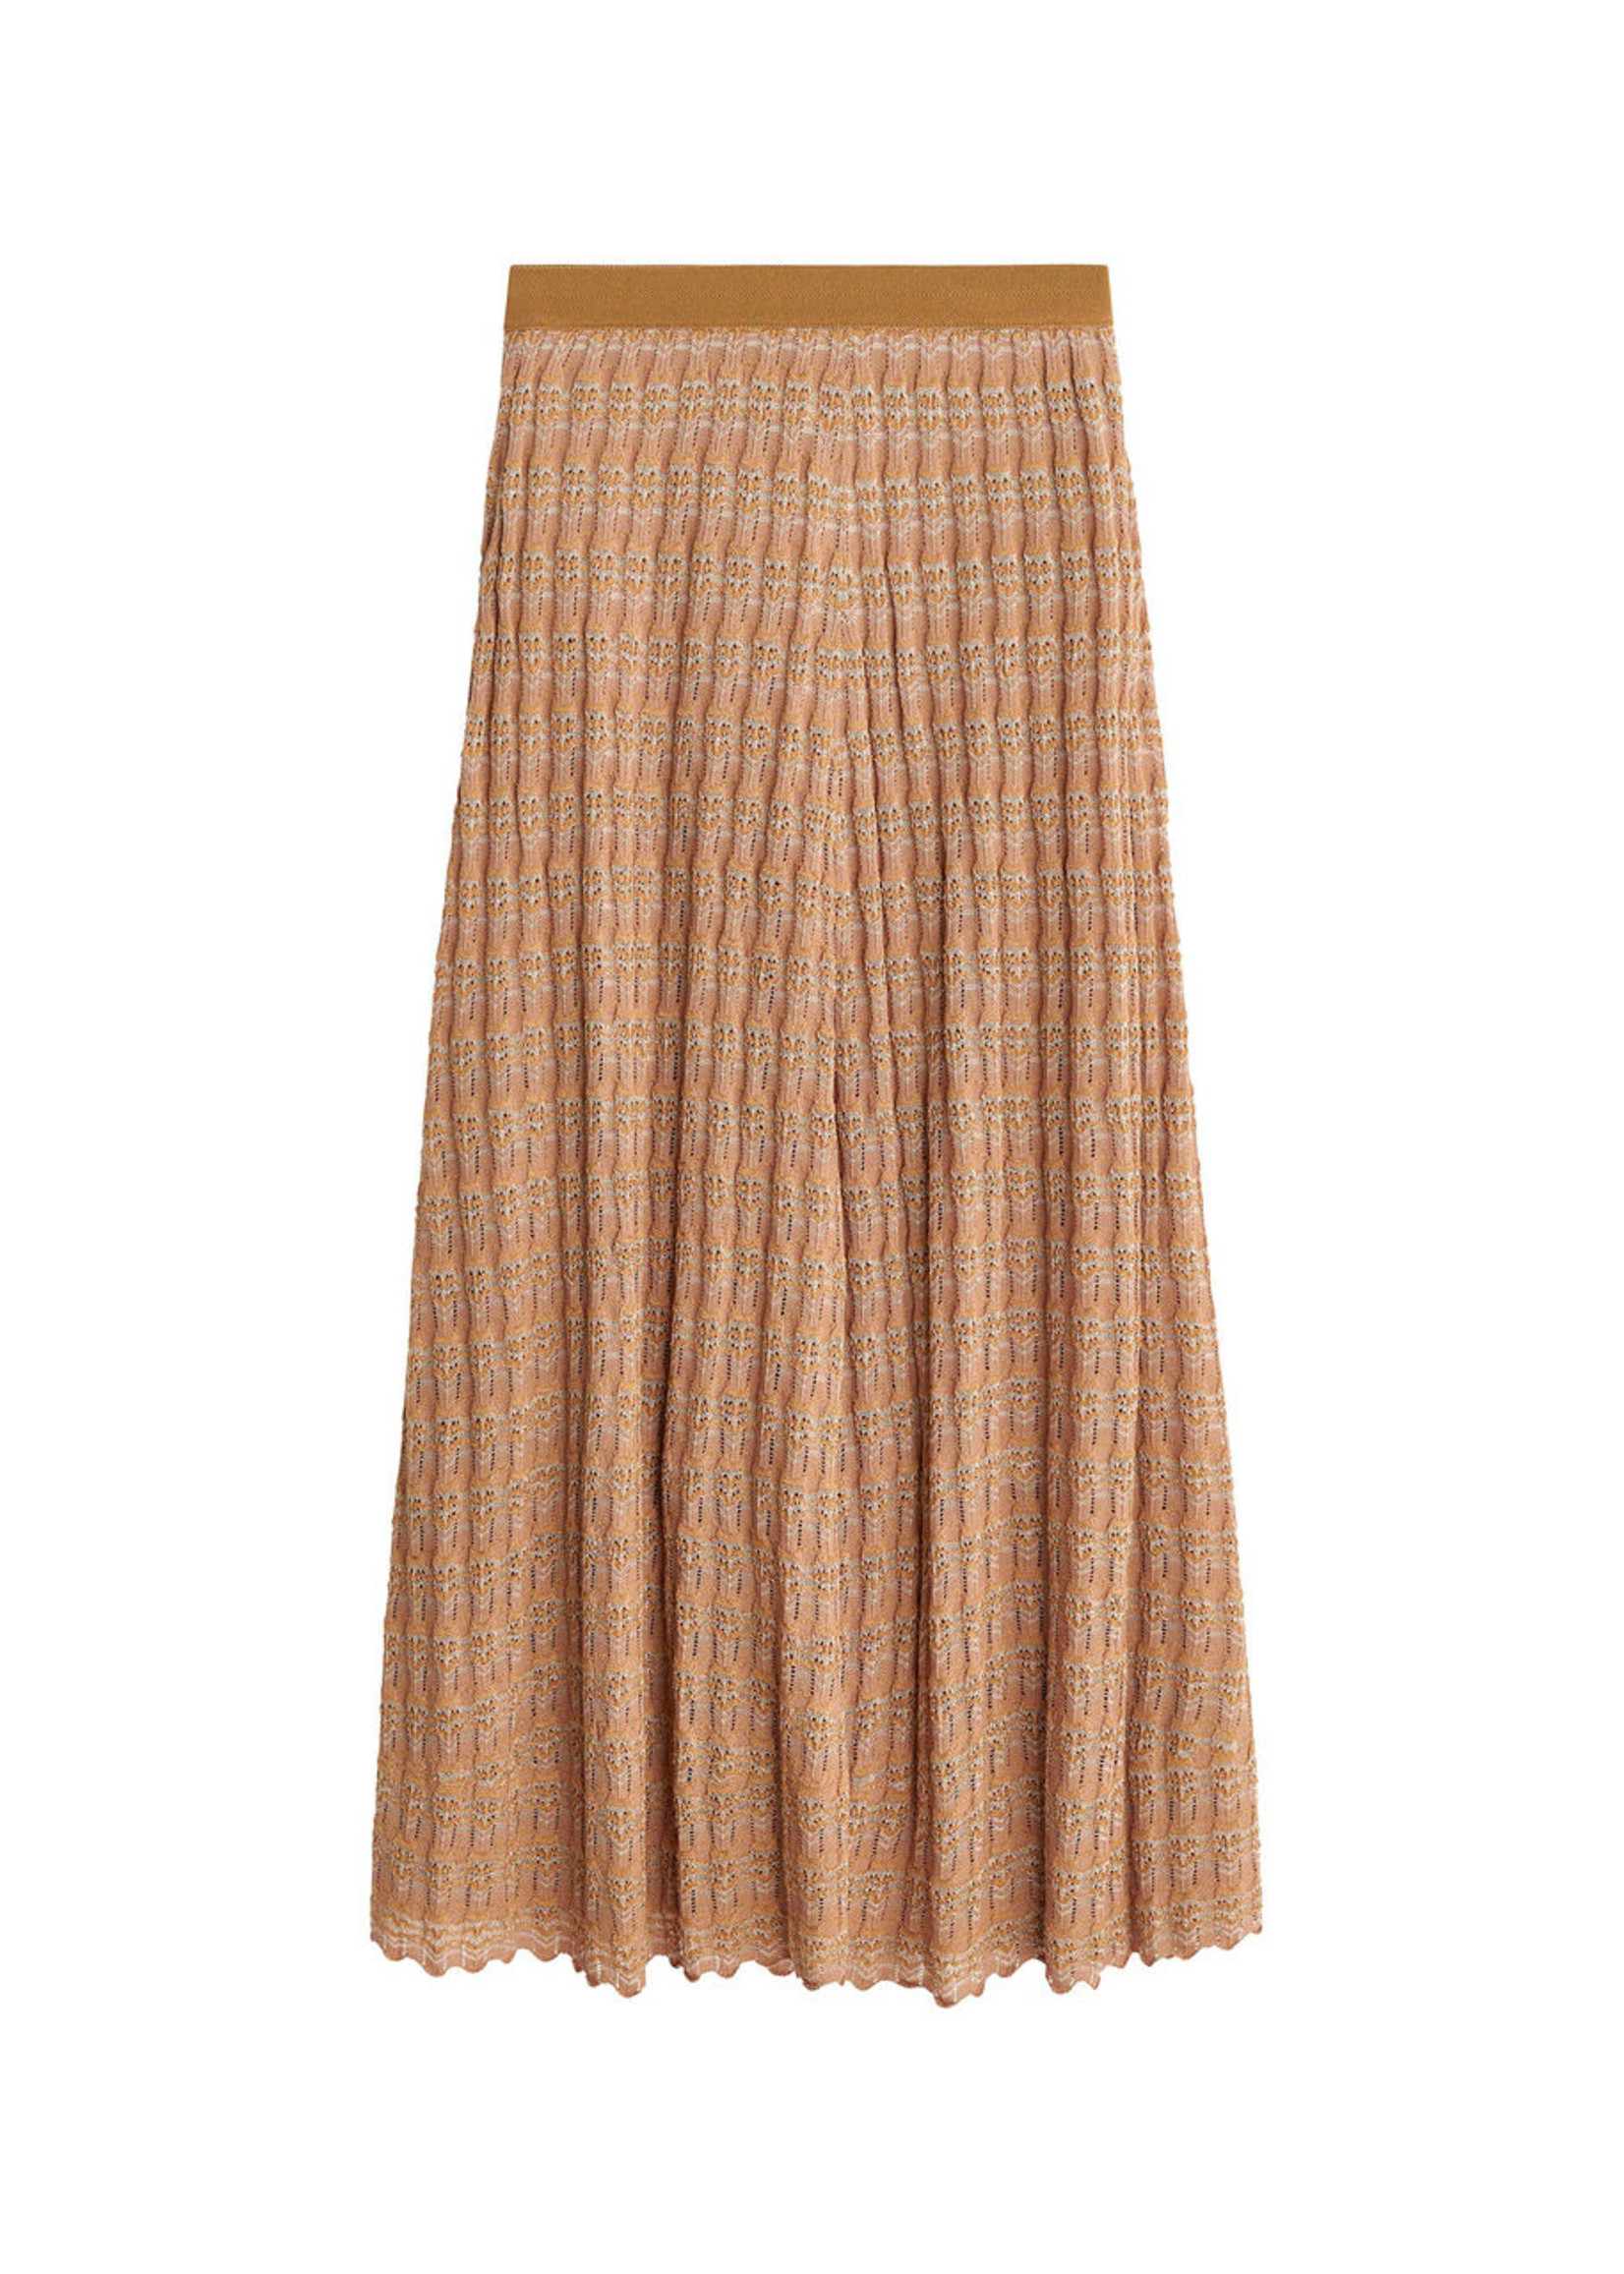 BY MALENE BIRGER DONAX LACE KNITTED SKIRT